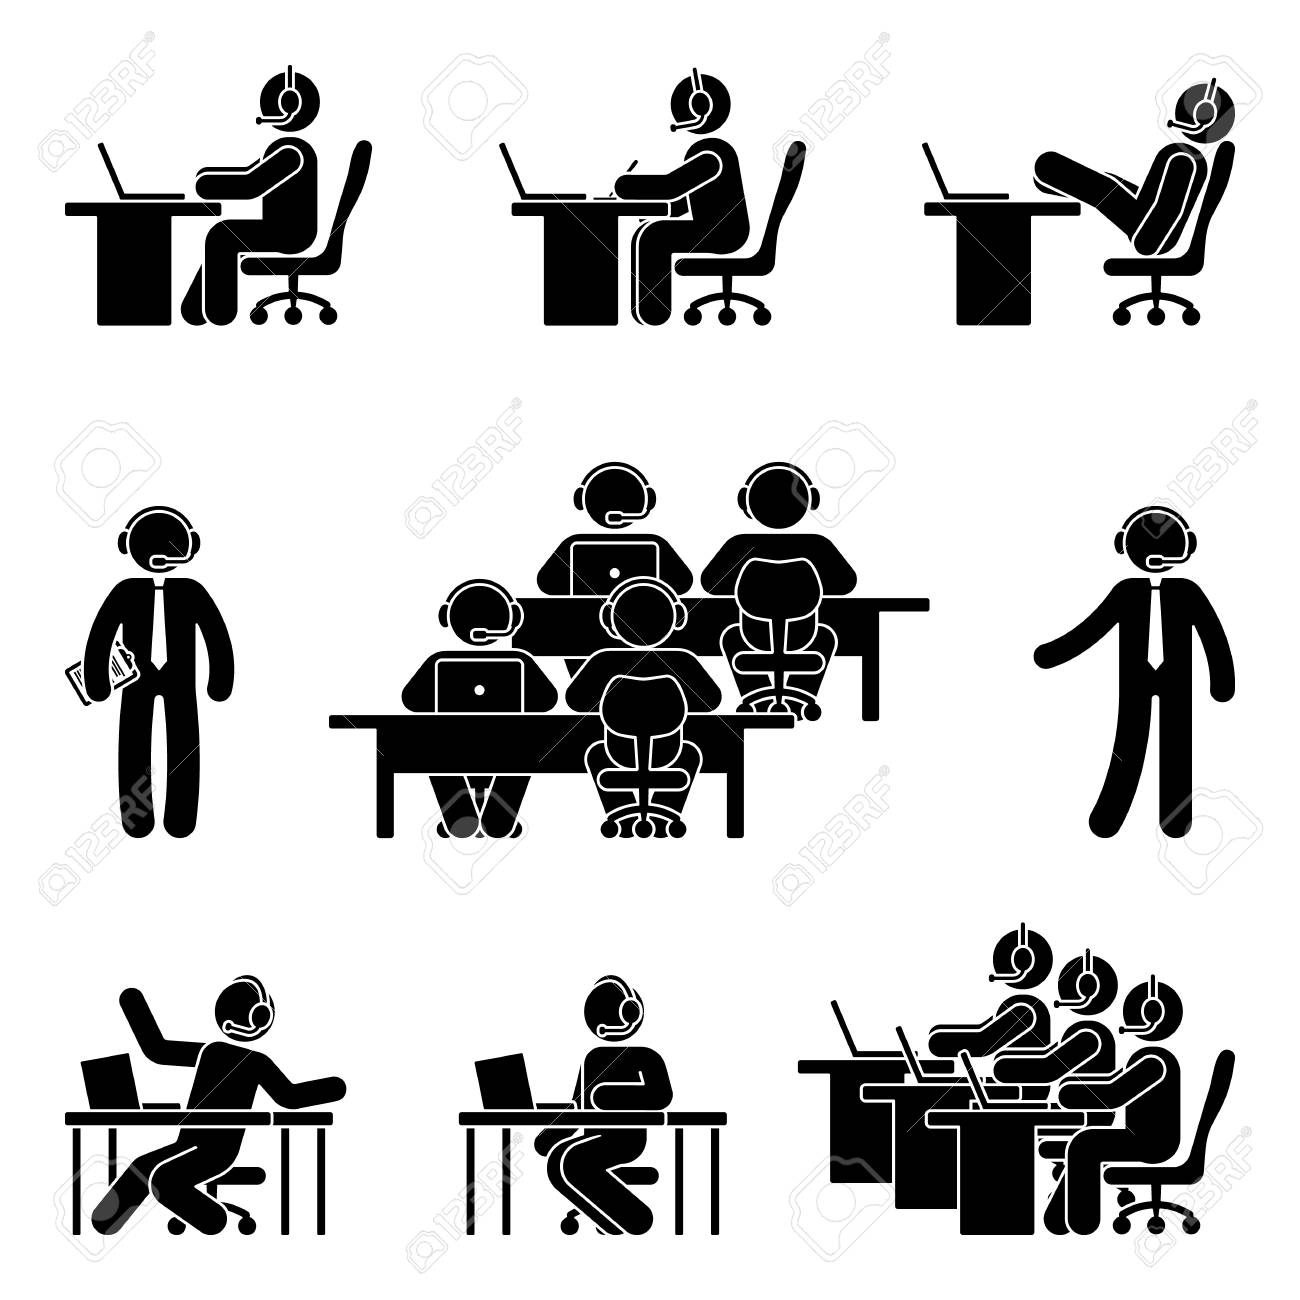 Stick figure working man using computer in call center. Vector illustration of customer support icon set on white - 99222845